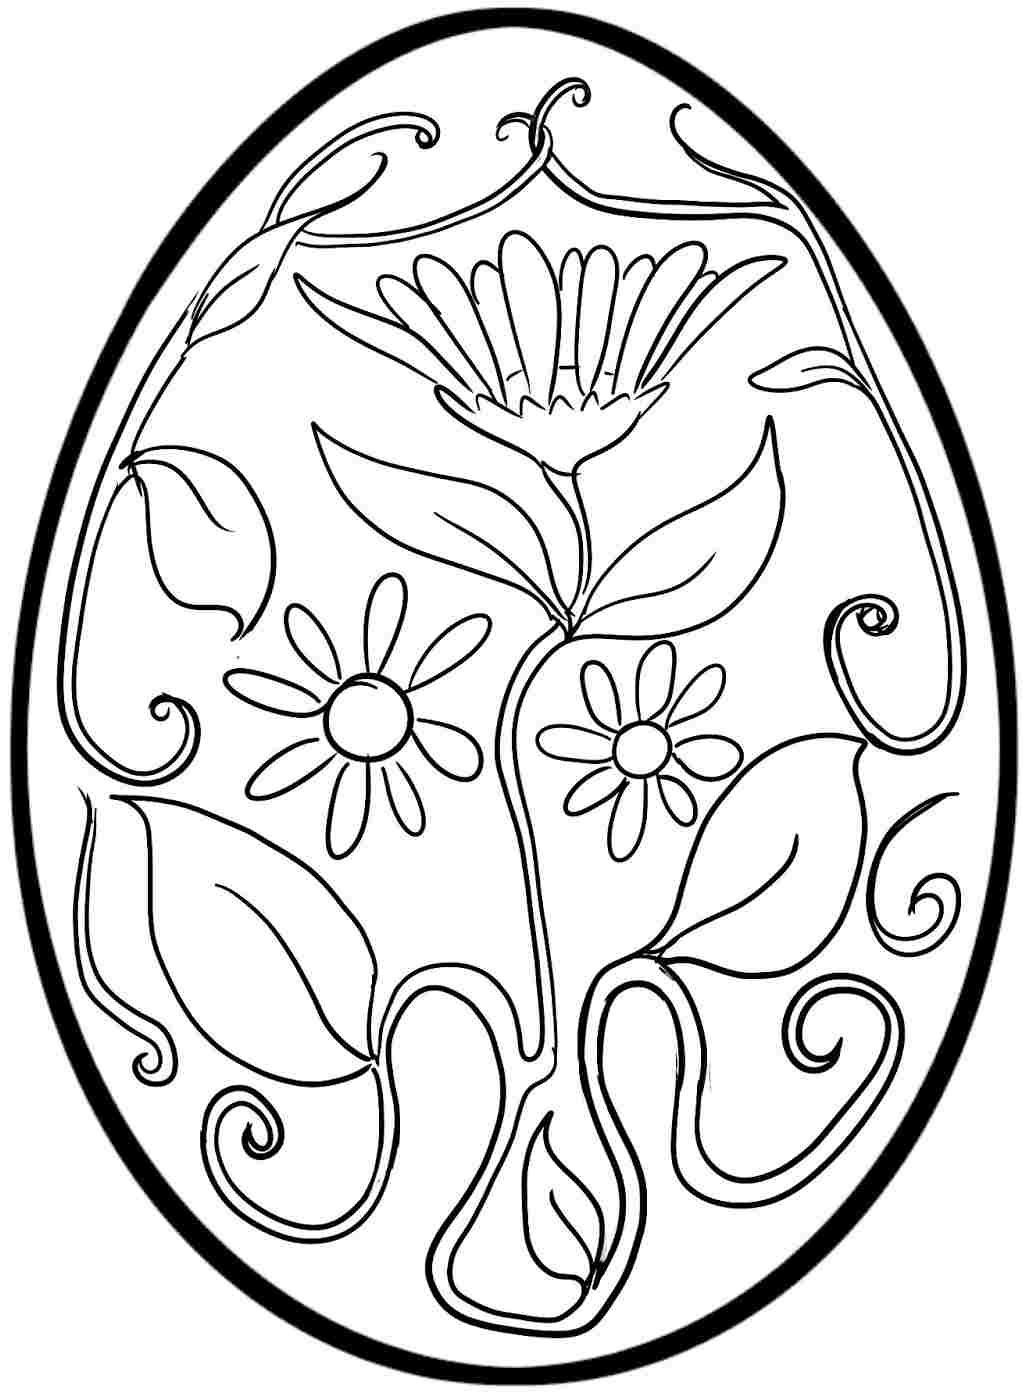 Easter Egg Colouring Pages Free For Kids & Boys # | Easter - Coloring Pages Free Printable Easter